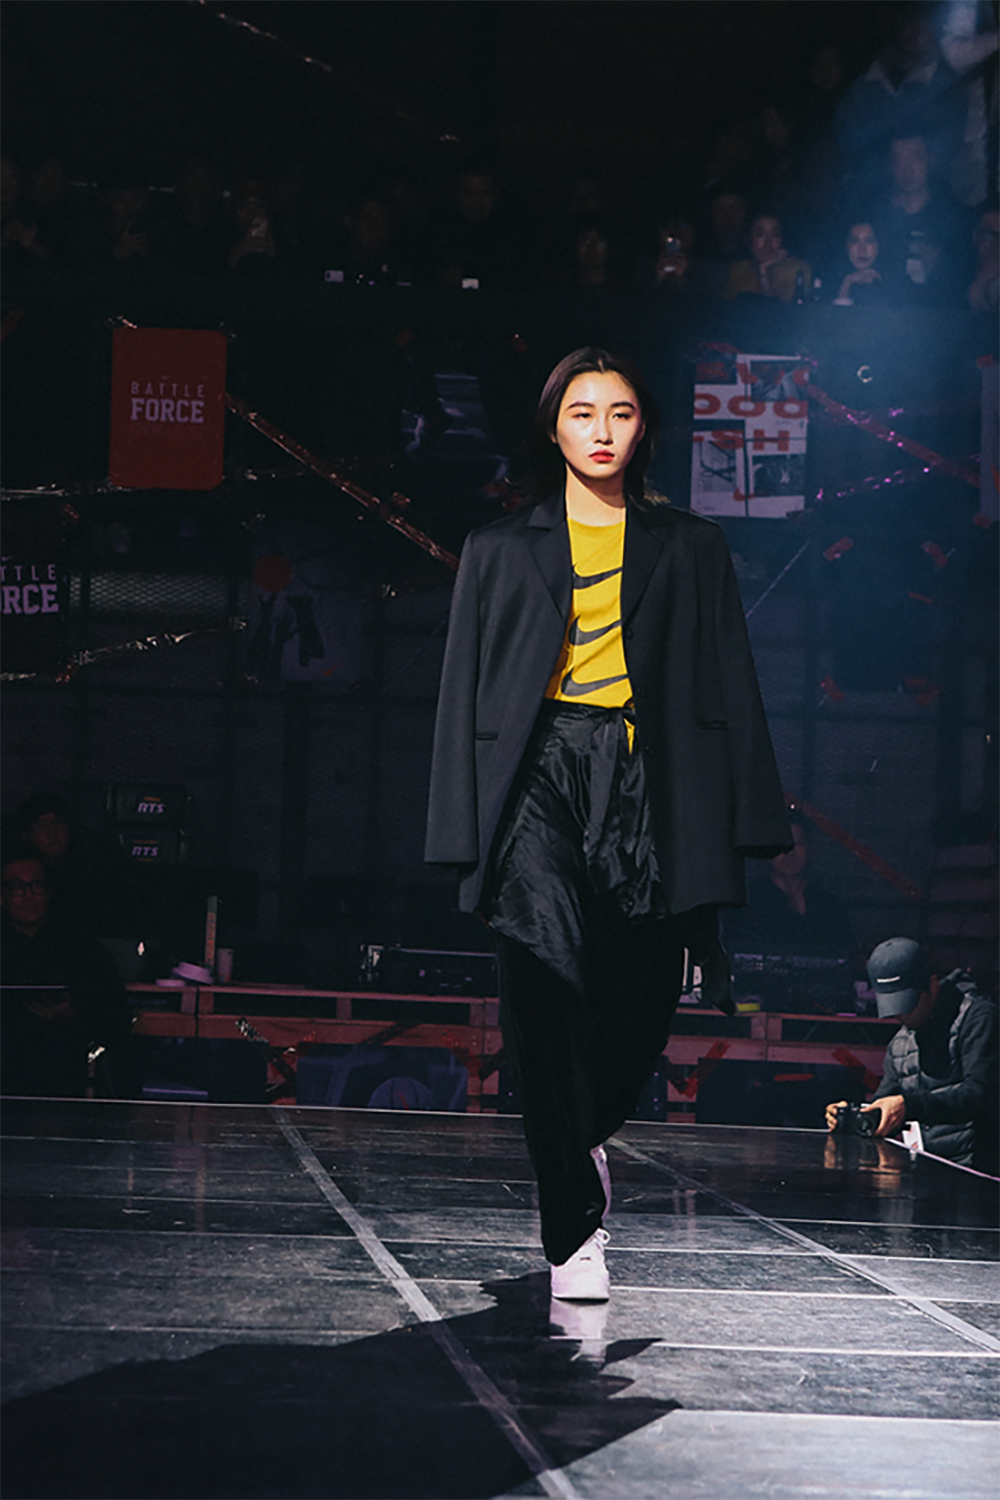 NIKE BATTLE FORCE SEOUL X MISCHIEF | photo recap